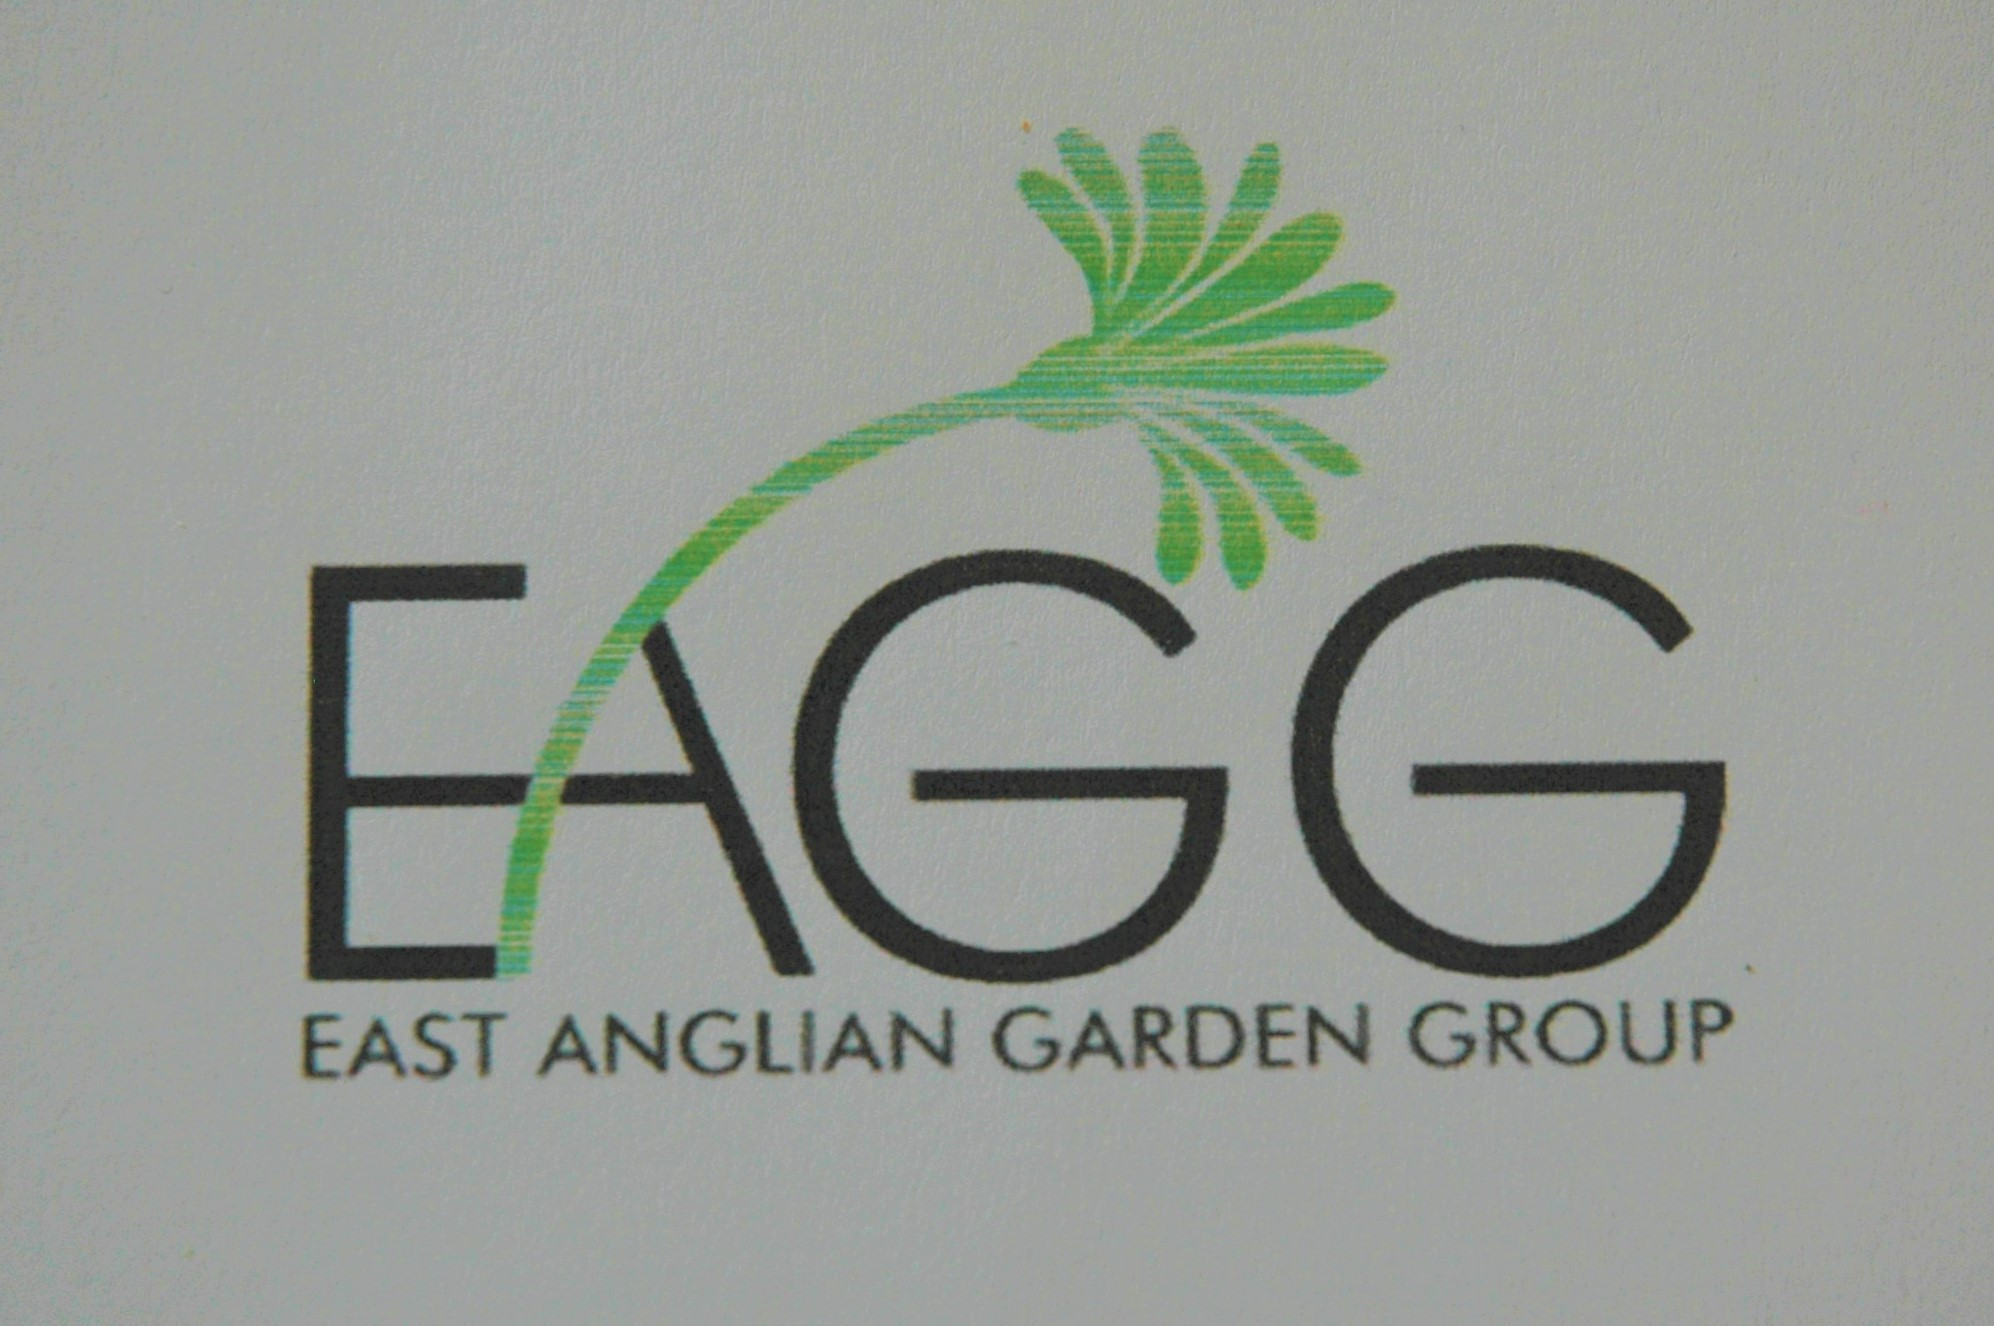 The East Anglian Garden Group